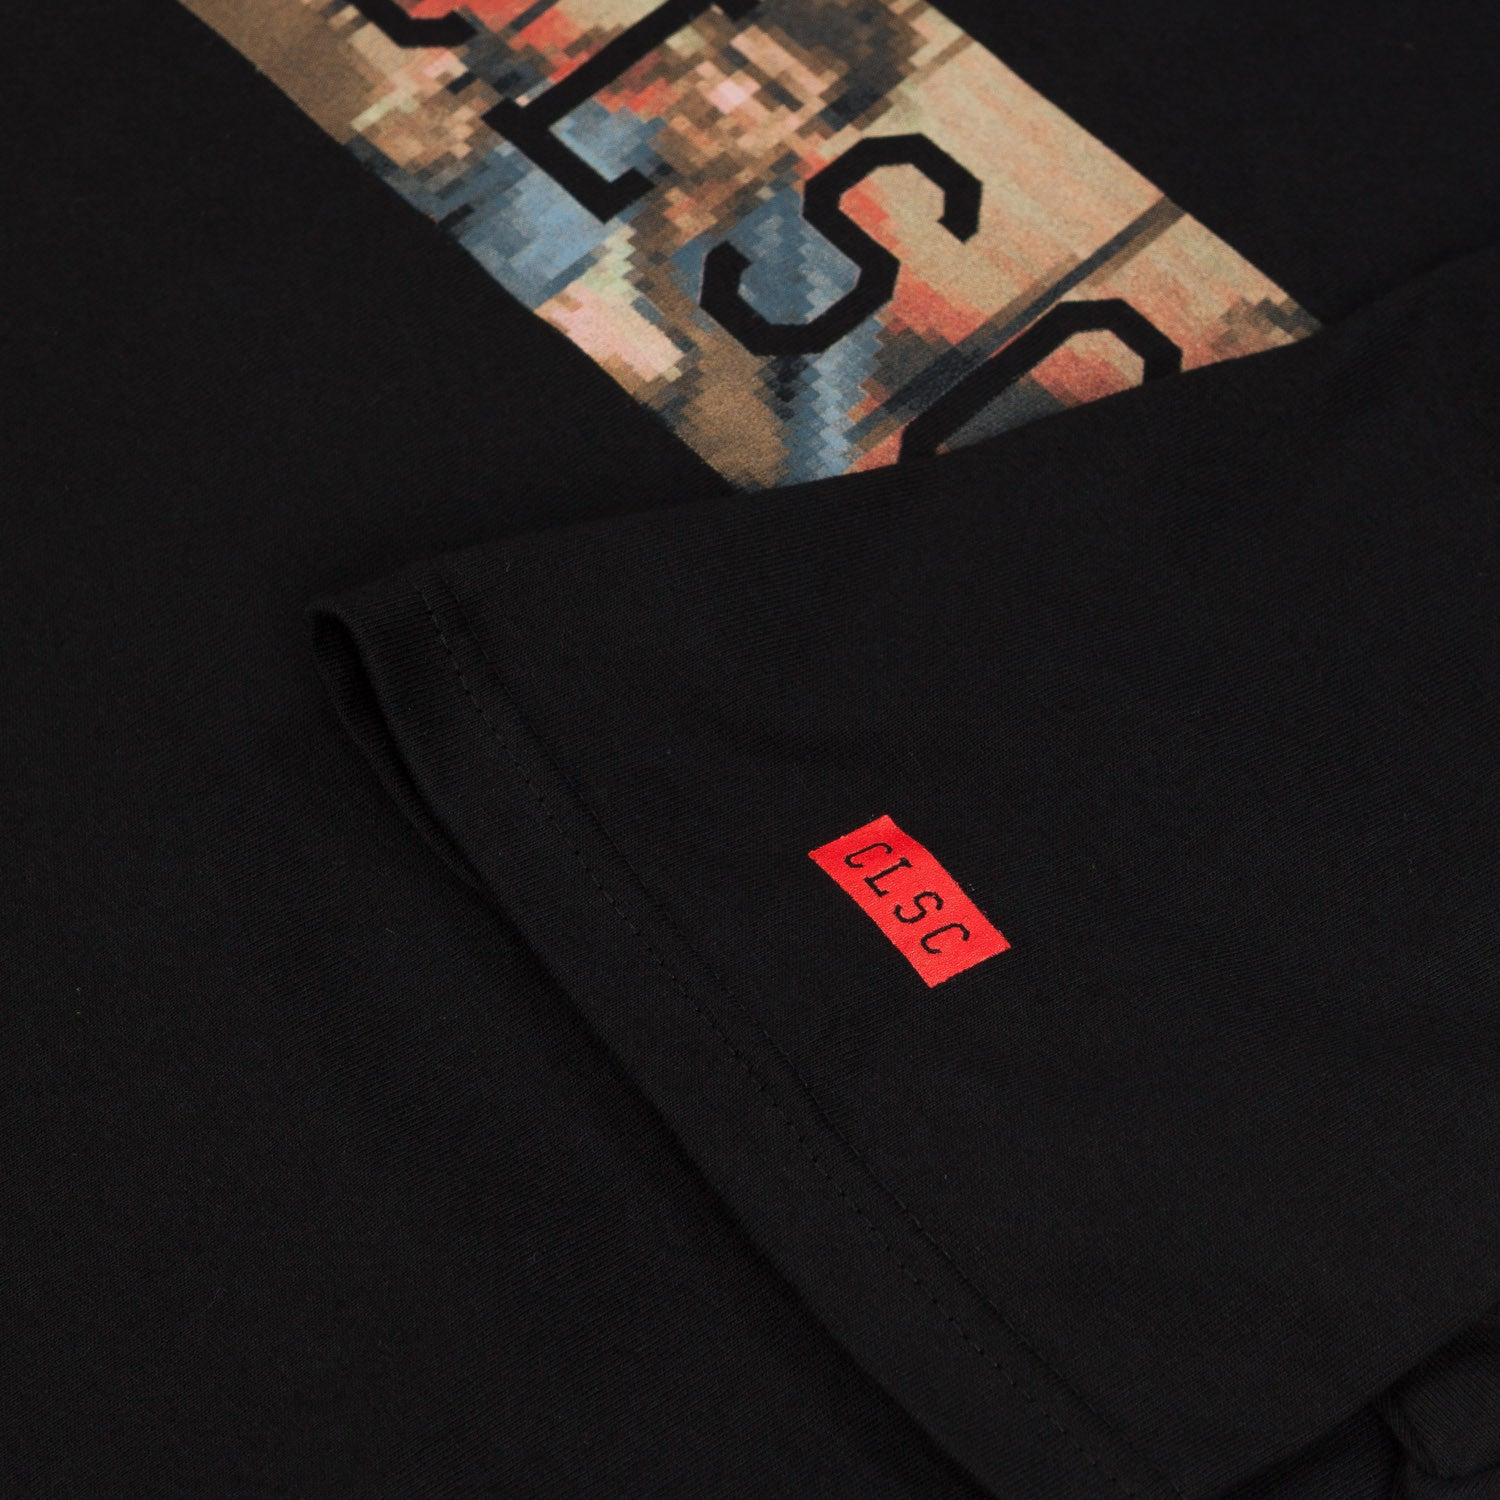 CLSC Tony T T-Shirt Black